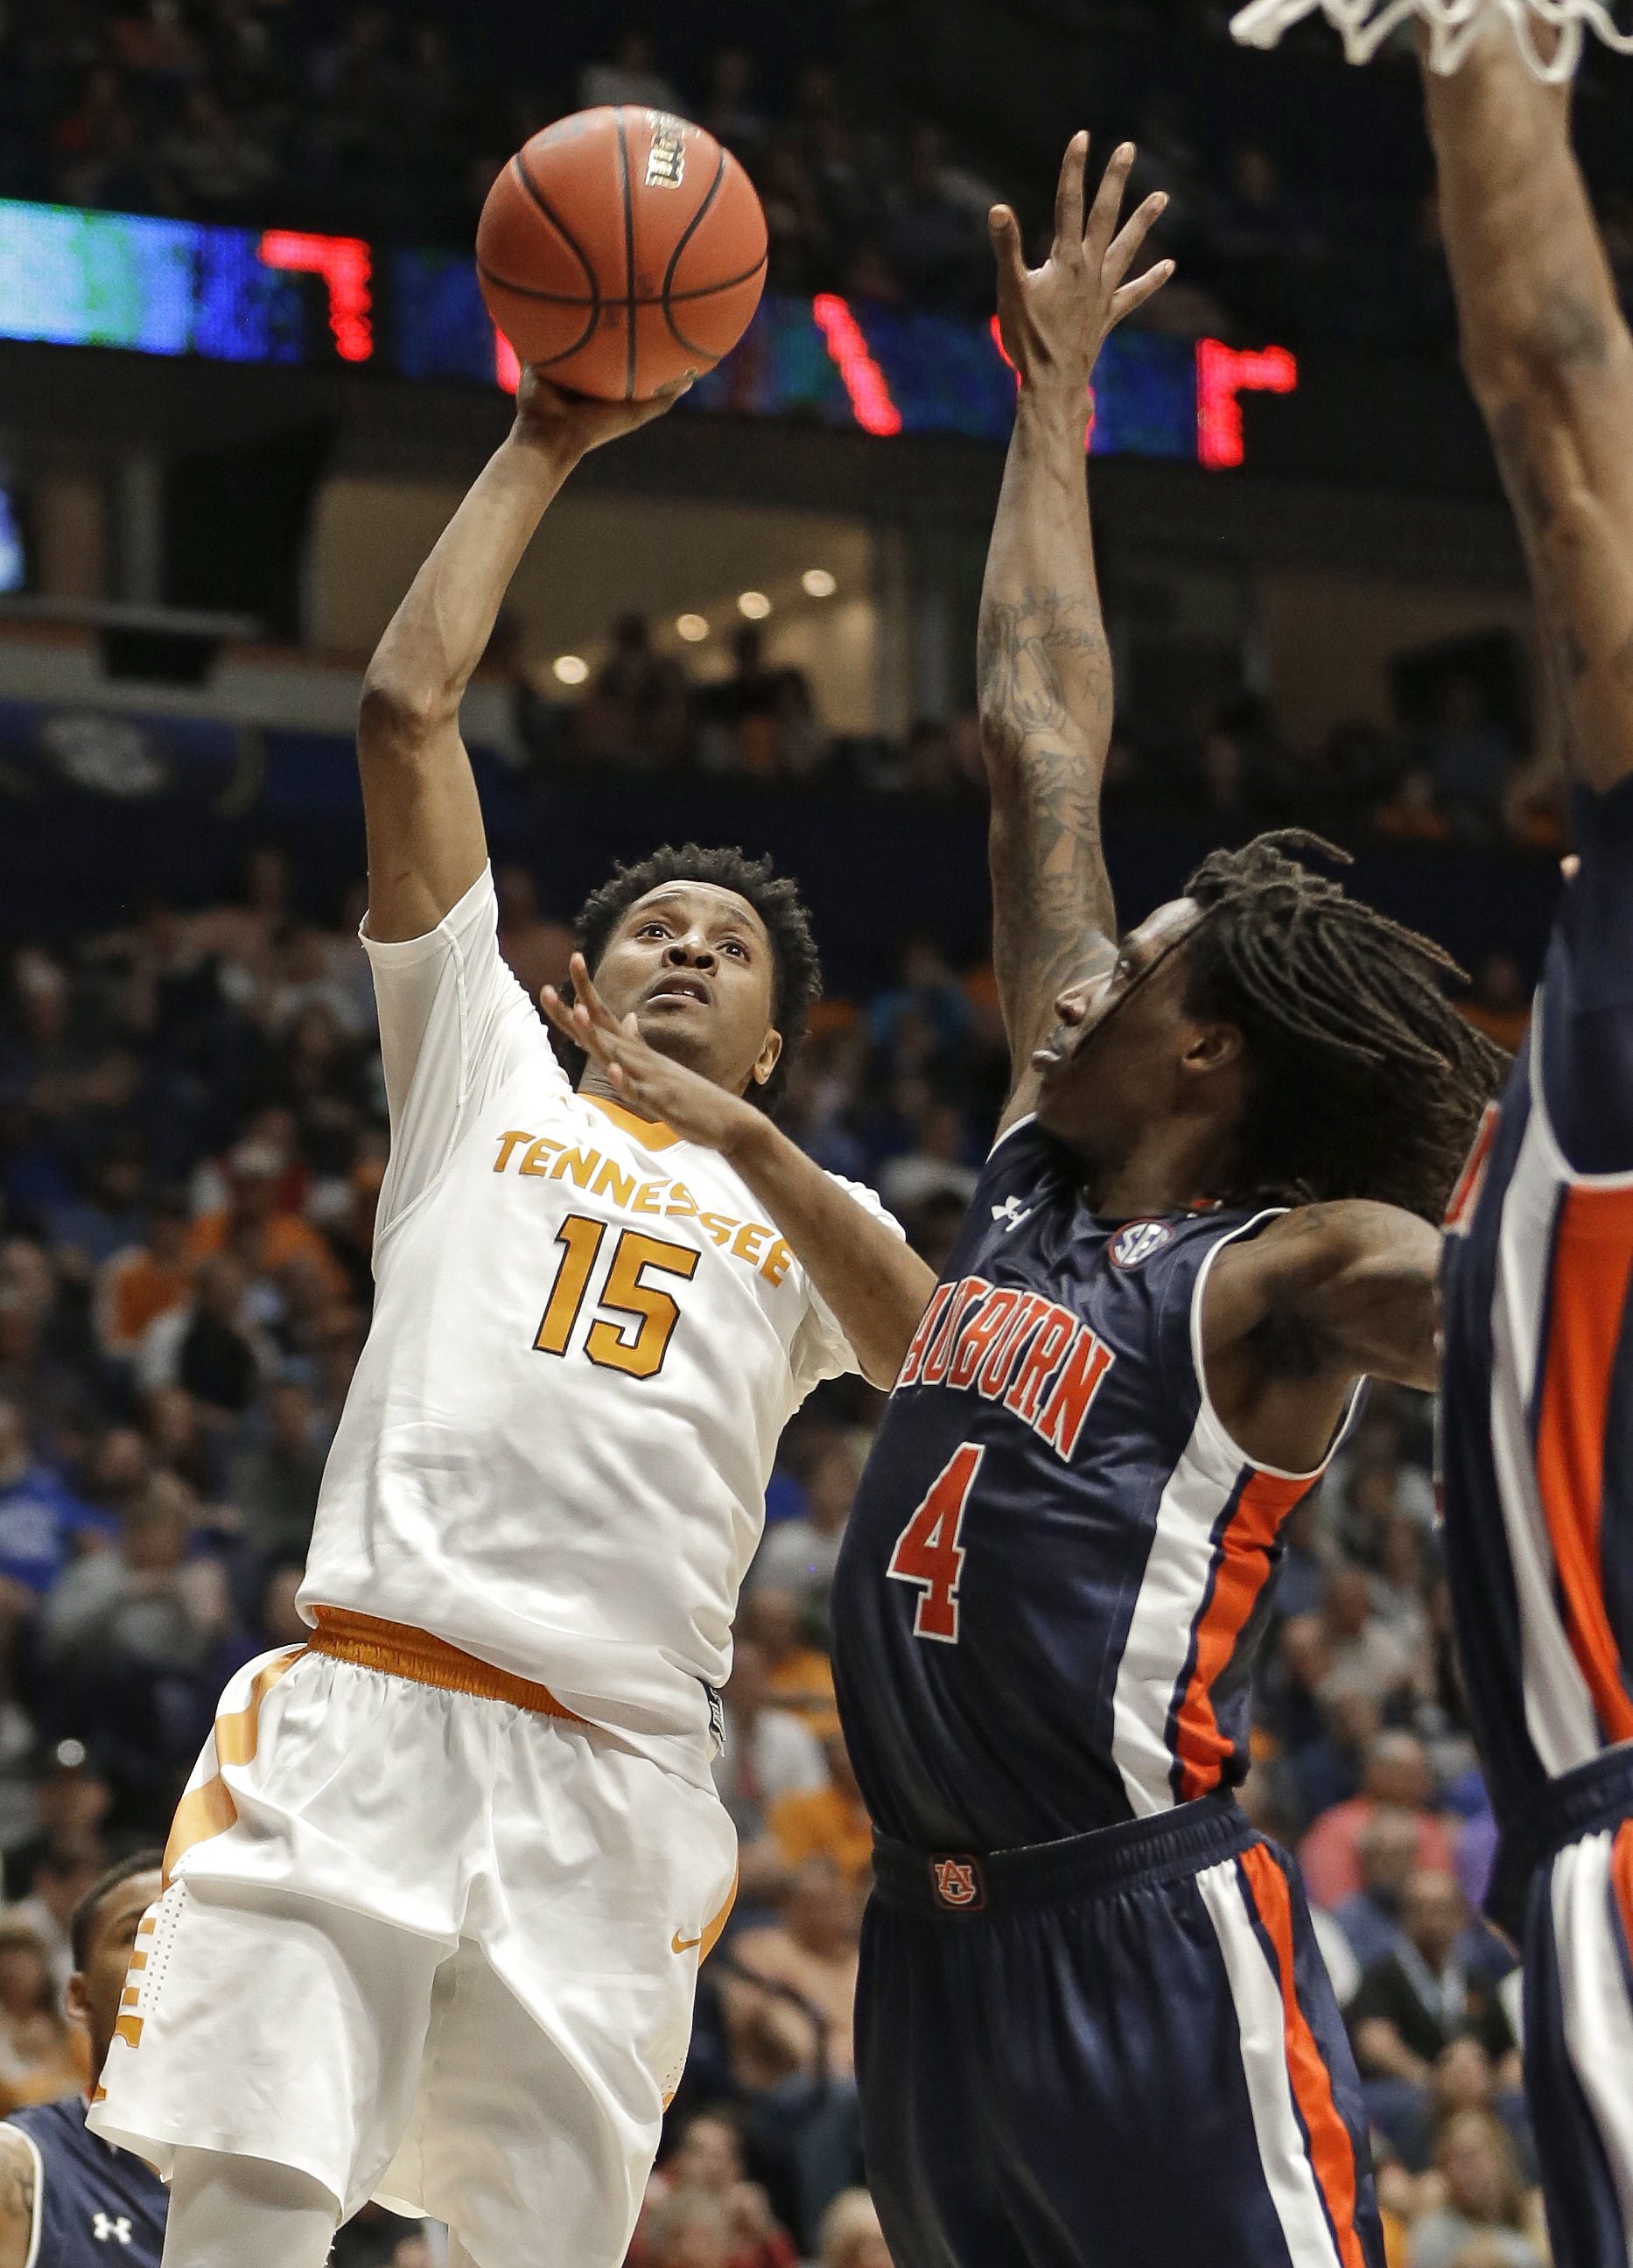 Tennessee's Detrick Mostella (15) shoots over Auburn's T.J. Dunans (4) during the second half of an NCAA college basketball game in the Southeastern Conference tournament in Nashville, Tenn., Wednesday, March 9, 2016. (AP Photo/Mark Humphrey)